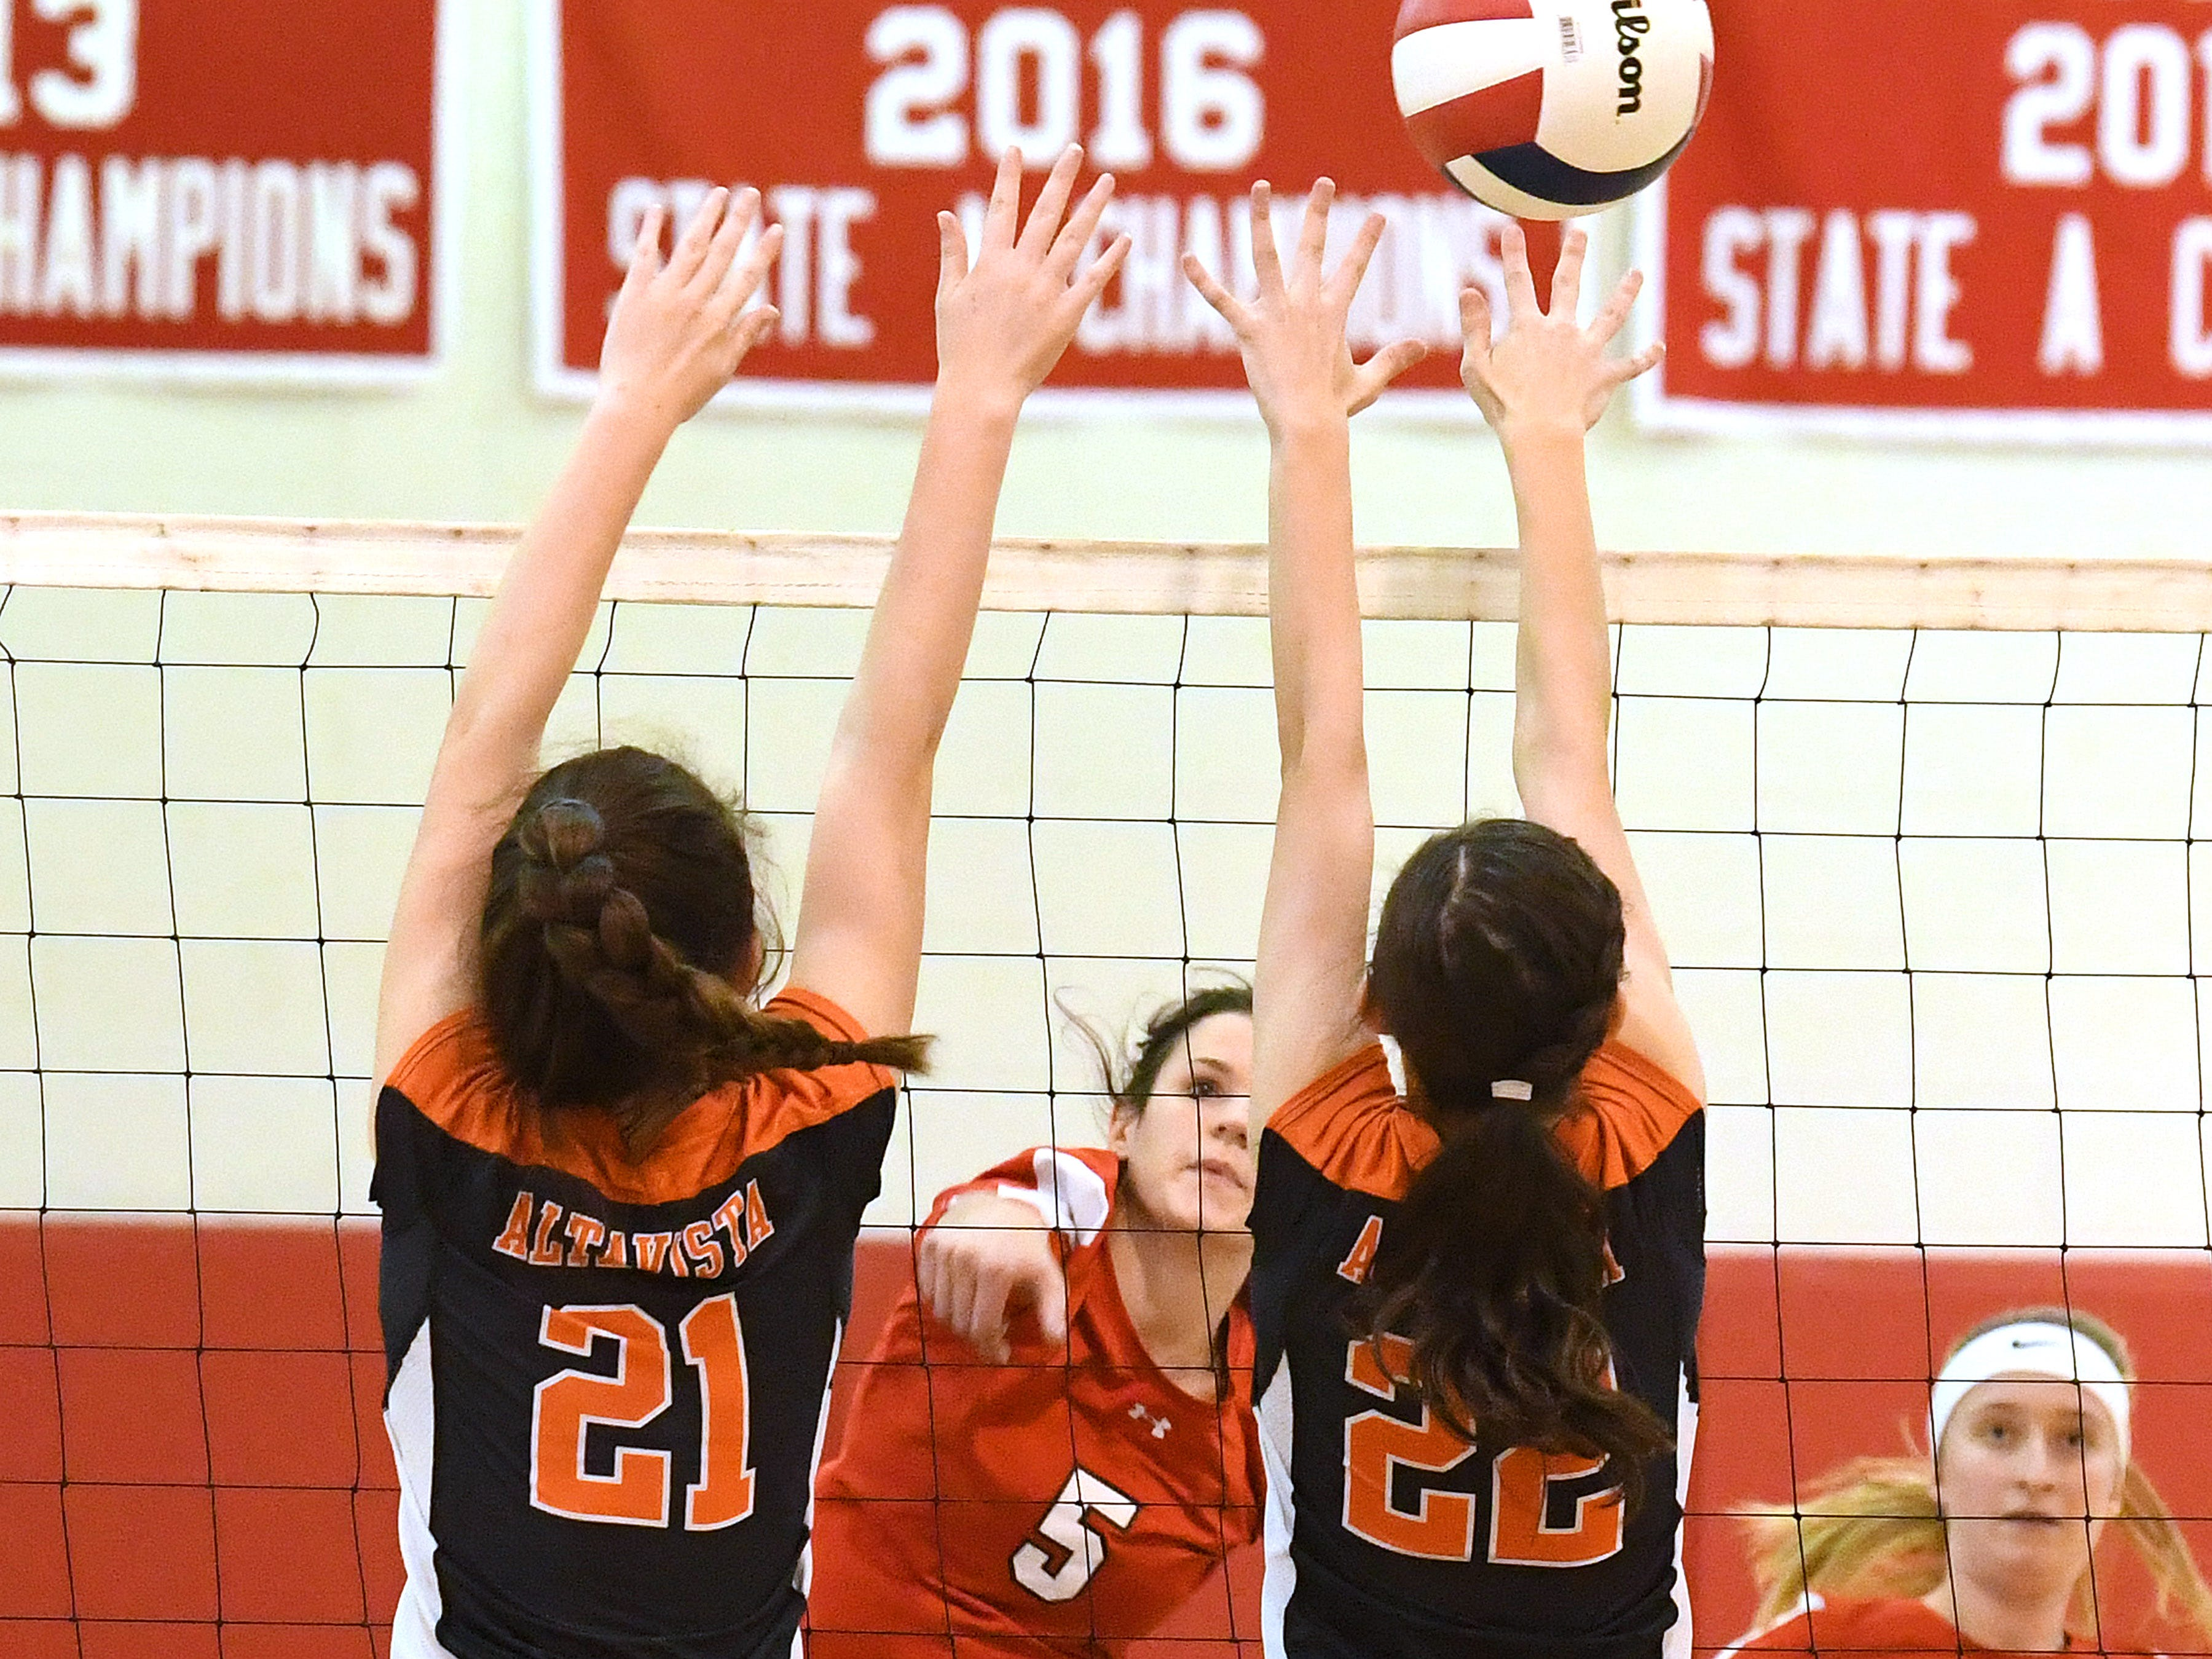 Riverheads' Abbey Eavers hits the ball past Altavista's Madeline Tweedy and Lillian Castro during the Region 1B volleyball championship played in Greenville on Wednesday, Nov. 7, 2018.